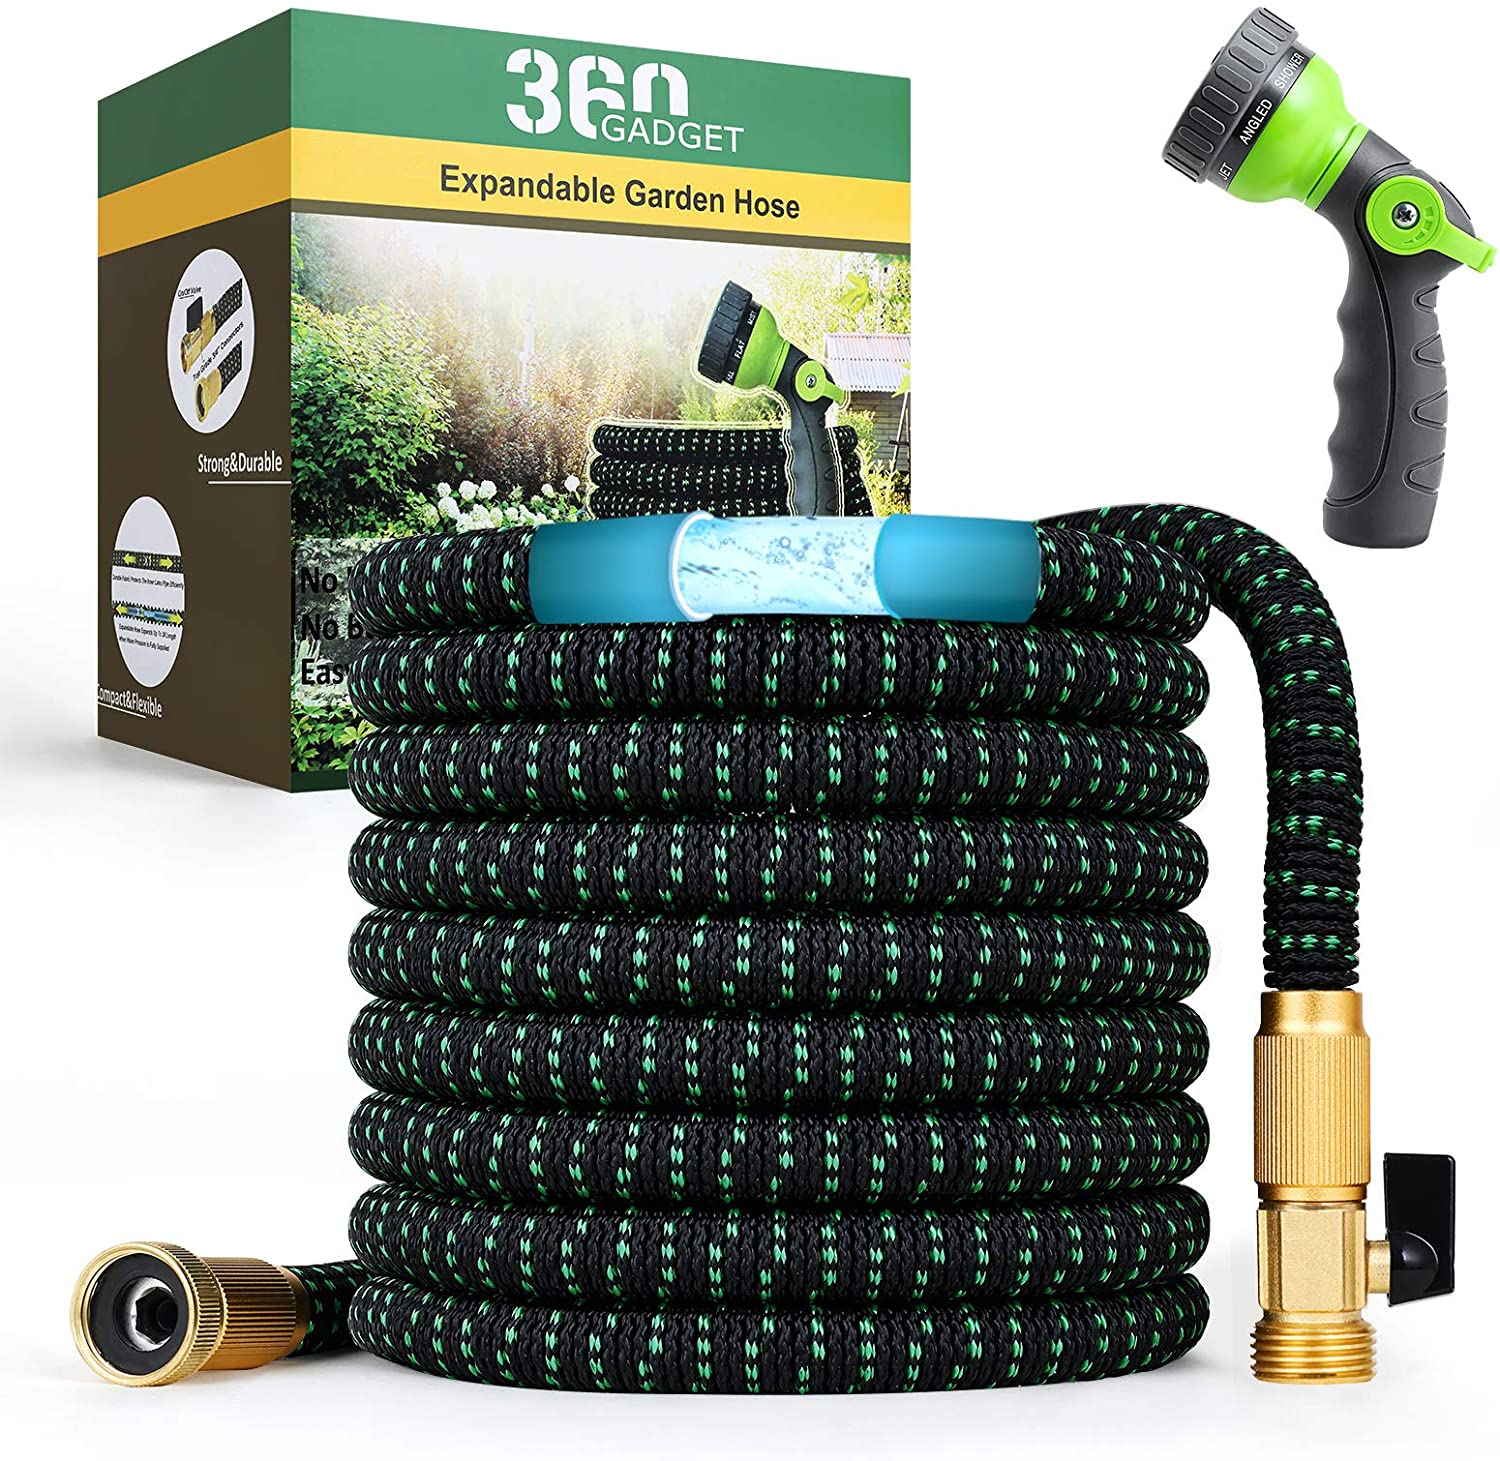 360Gadget Expandable and Flexible Garden Hose 50 ft Water Hose with 3/4